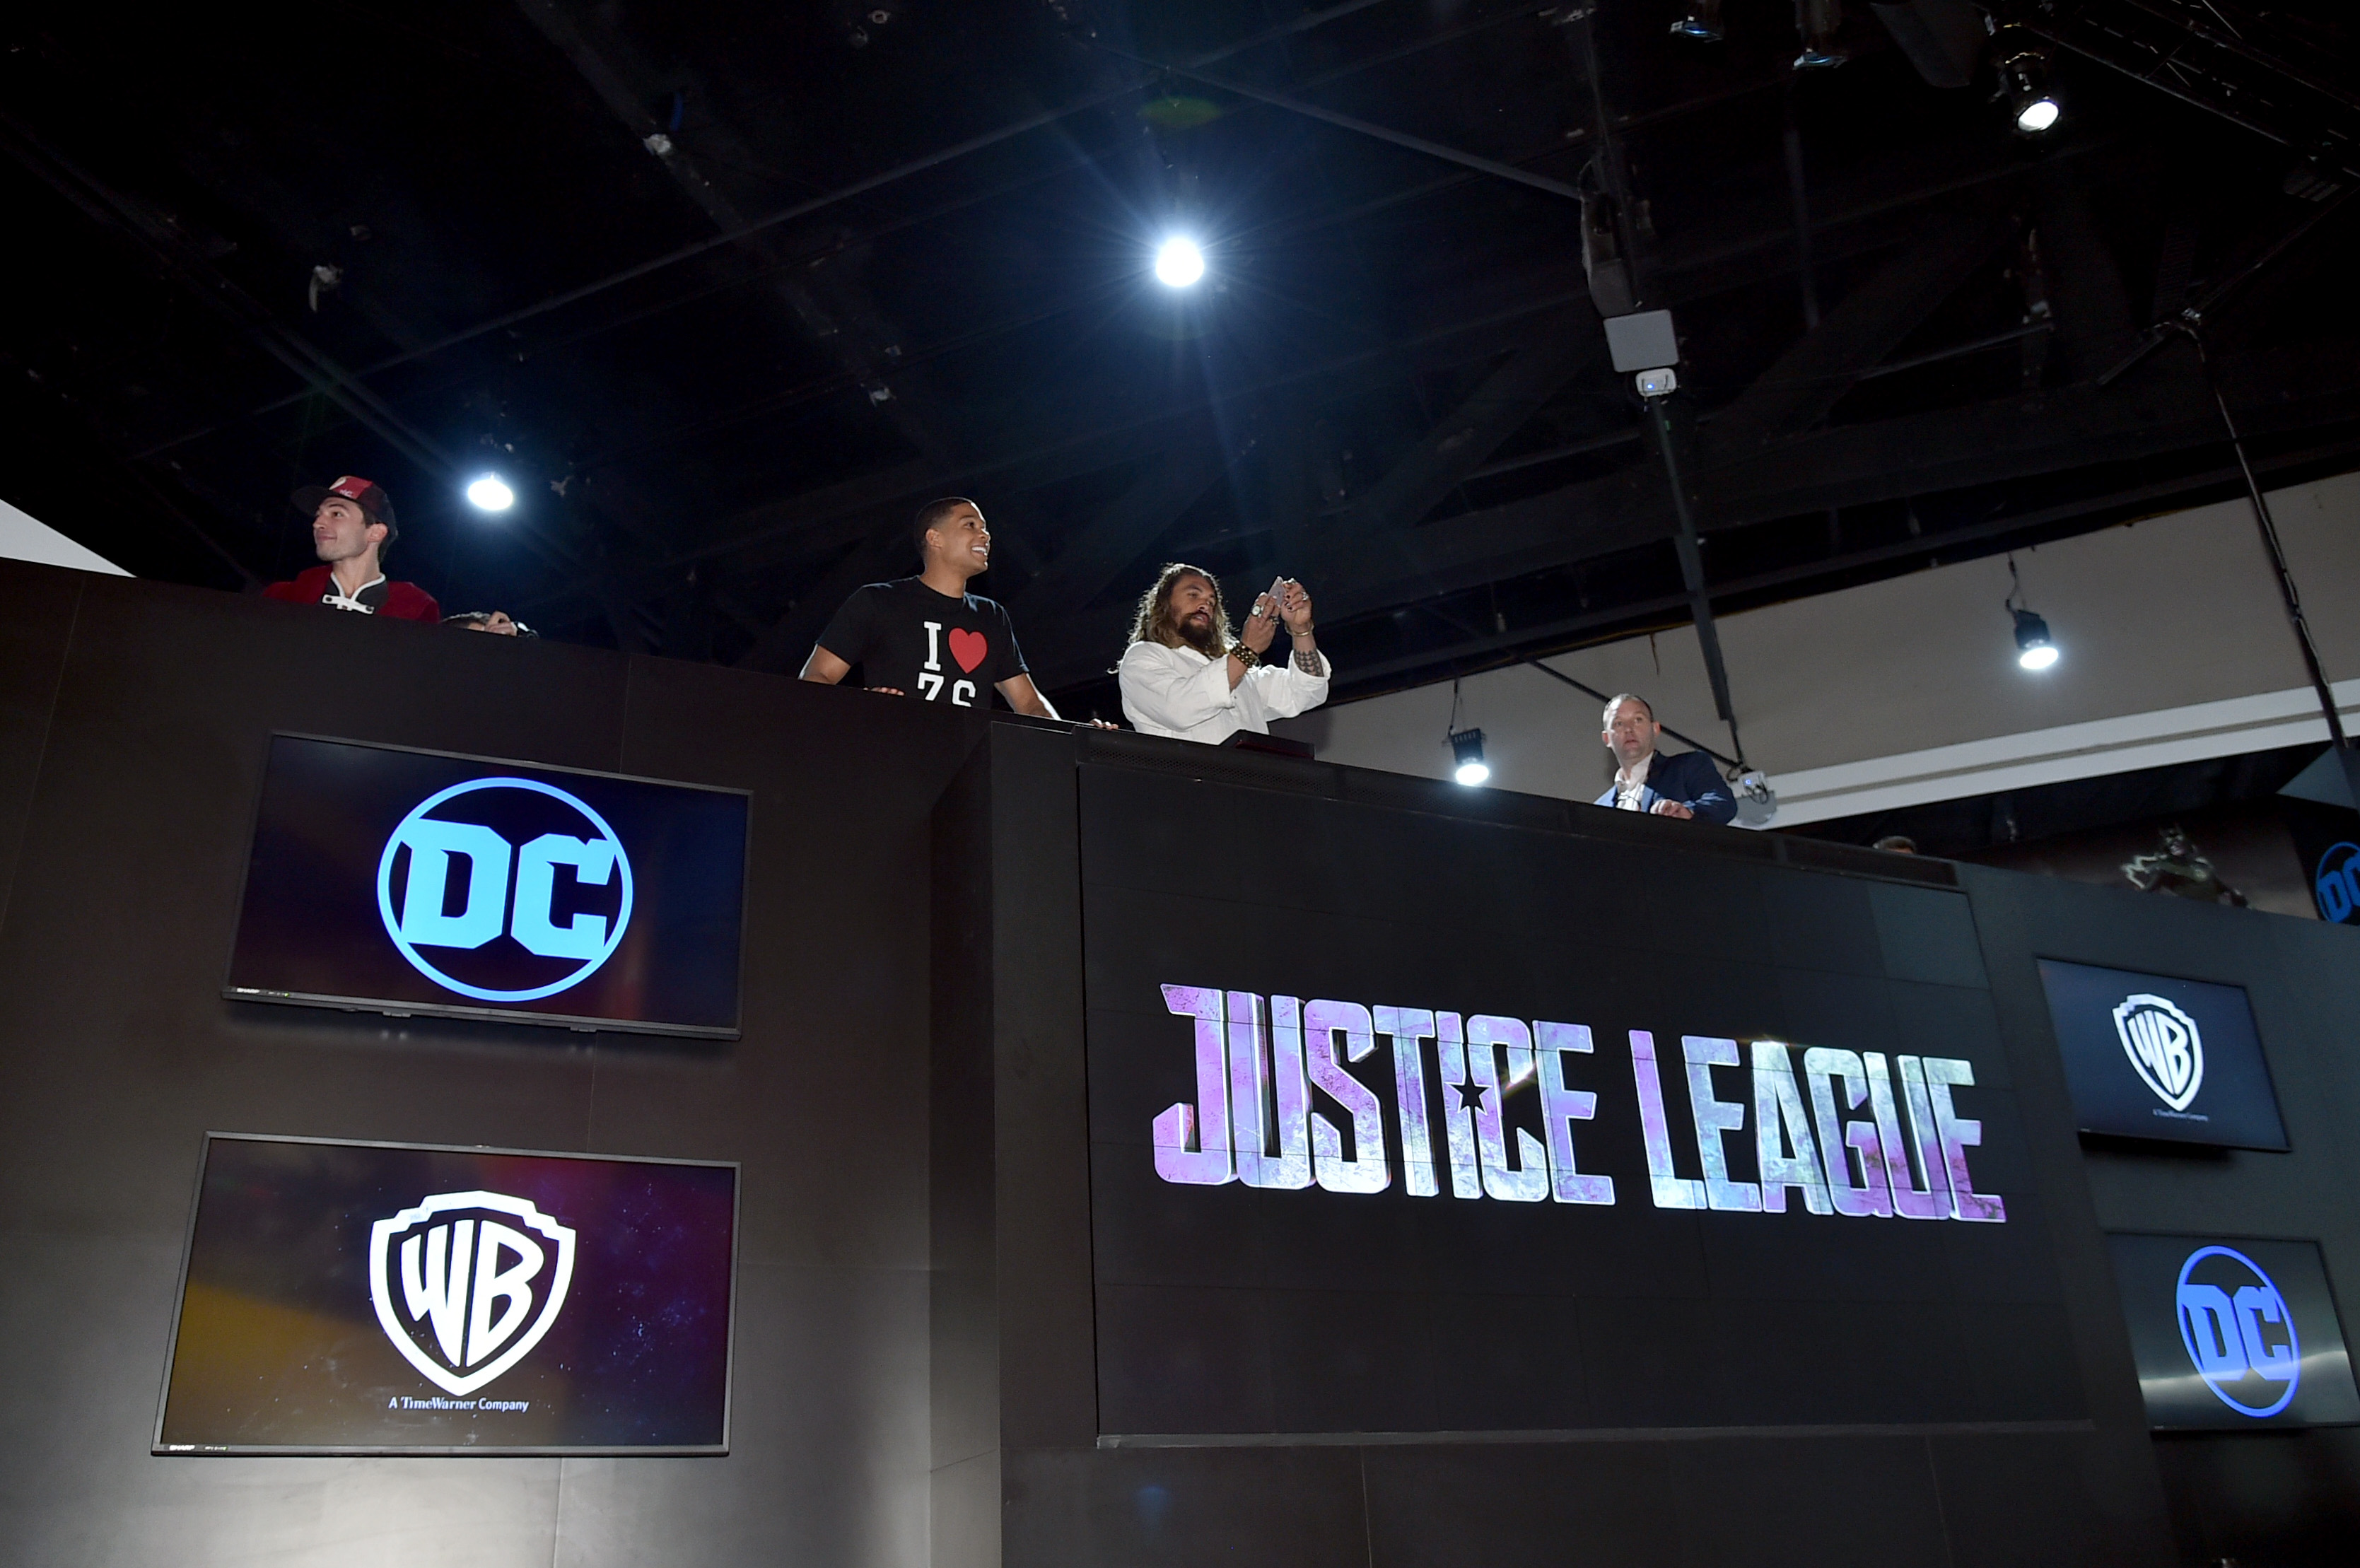 Comic-Con International 2017 - 'Justice League' Autograph Signing